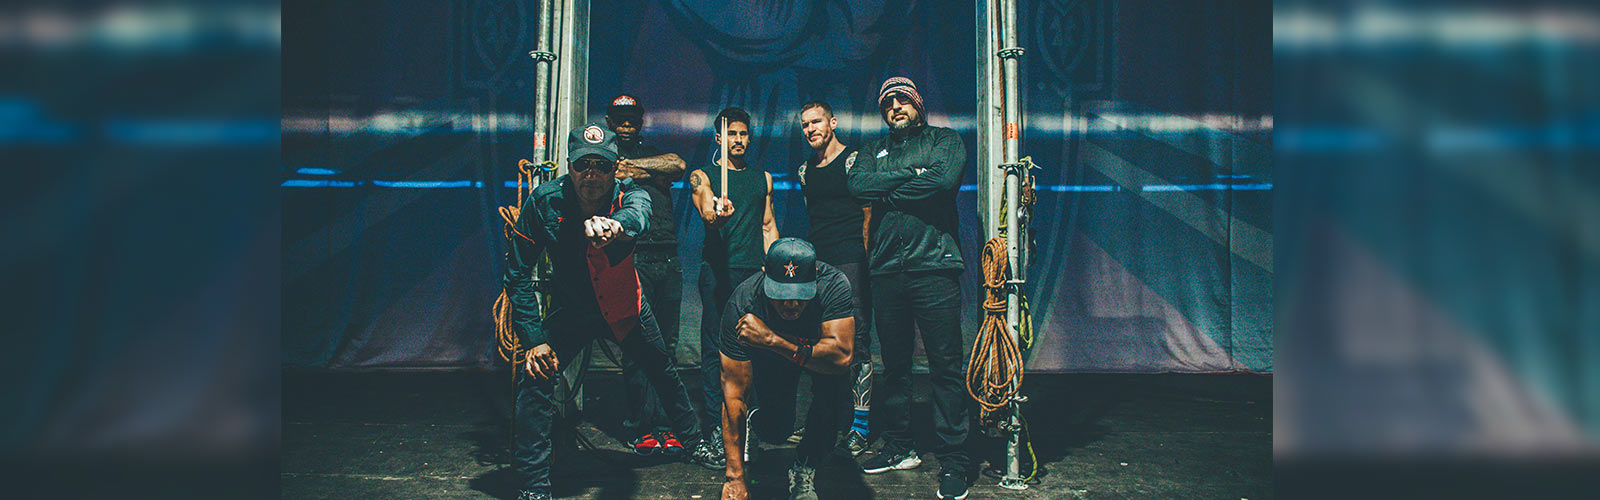 Prophets of Rage à L'Olympia